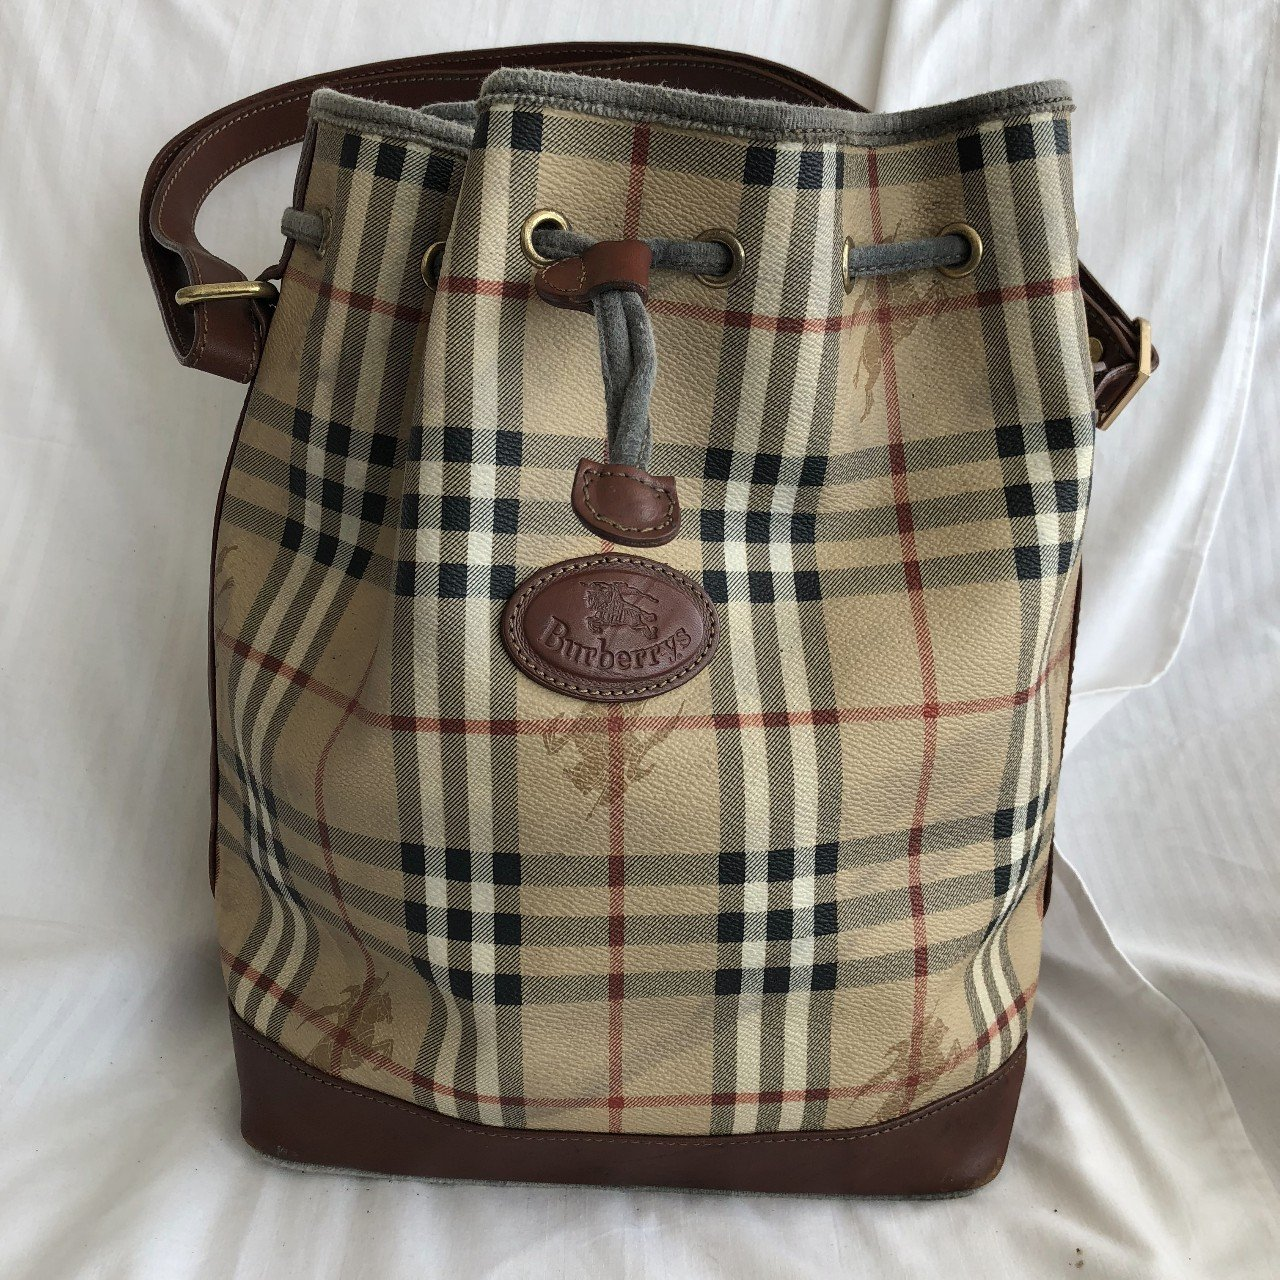 Burberry Vintage Canvas Shoulder Cabas with Leather in bag - Depop cc0f6df8d15b4